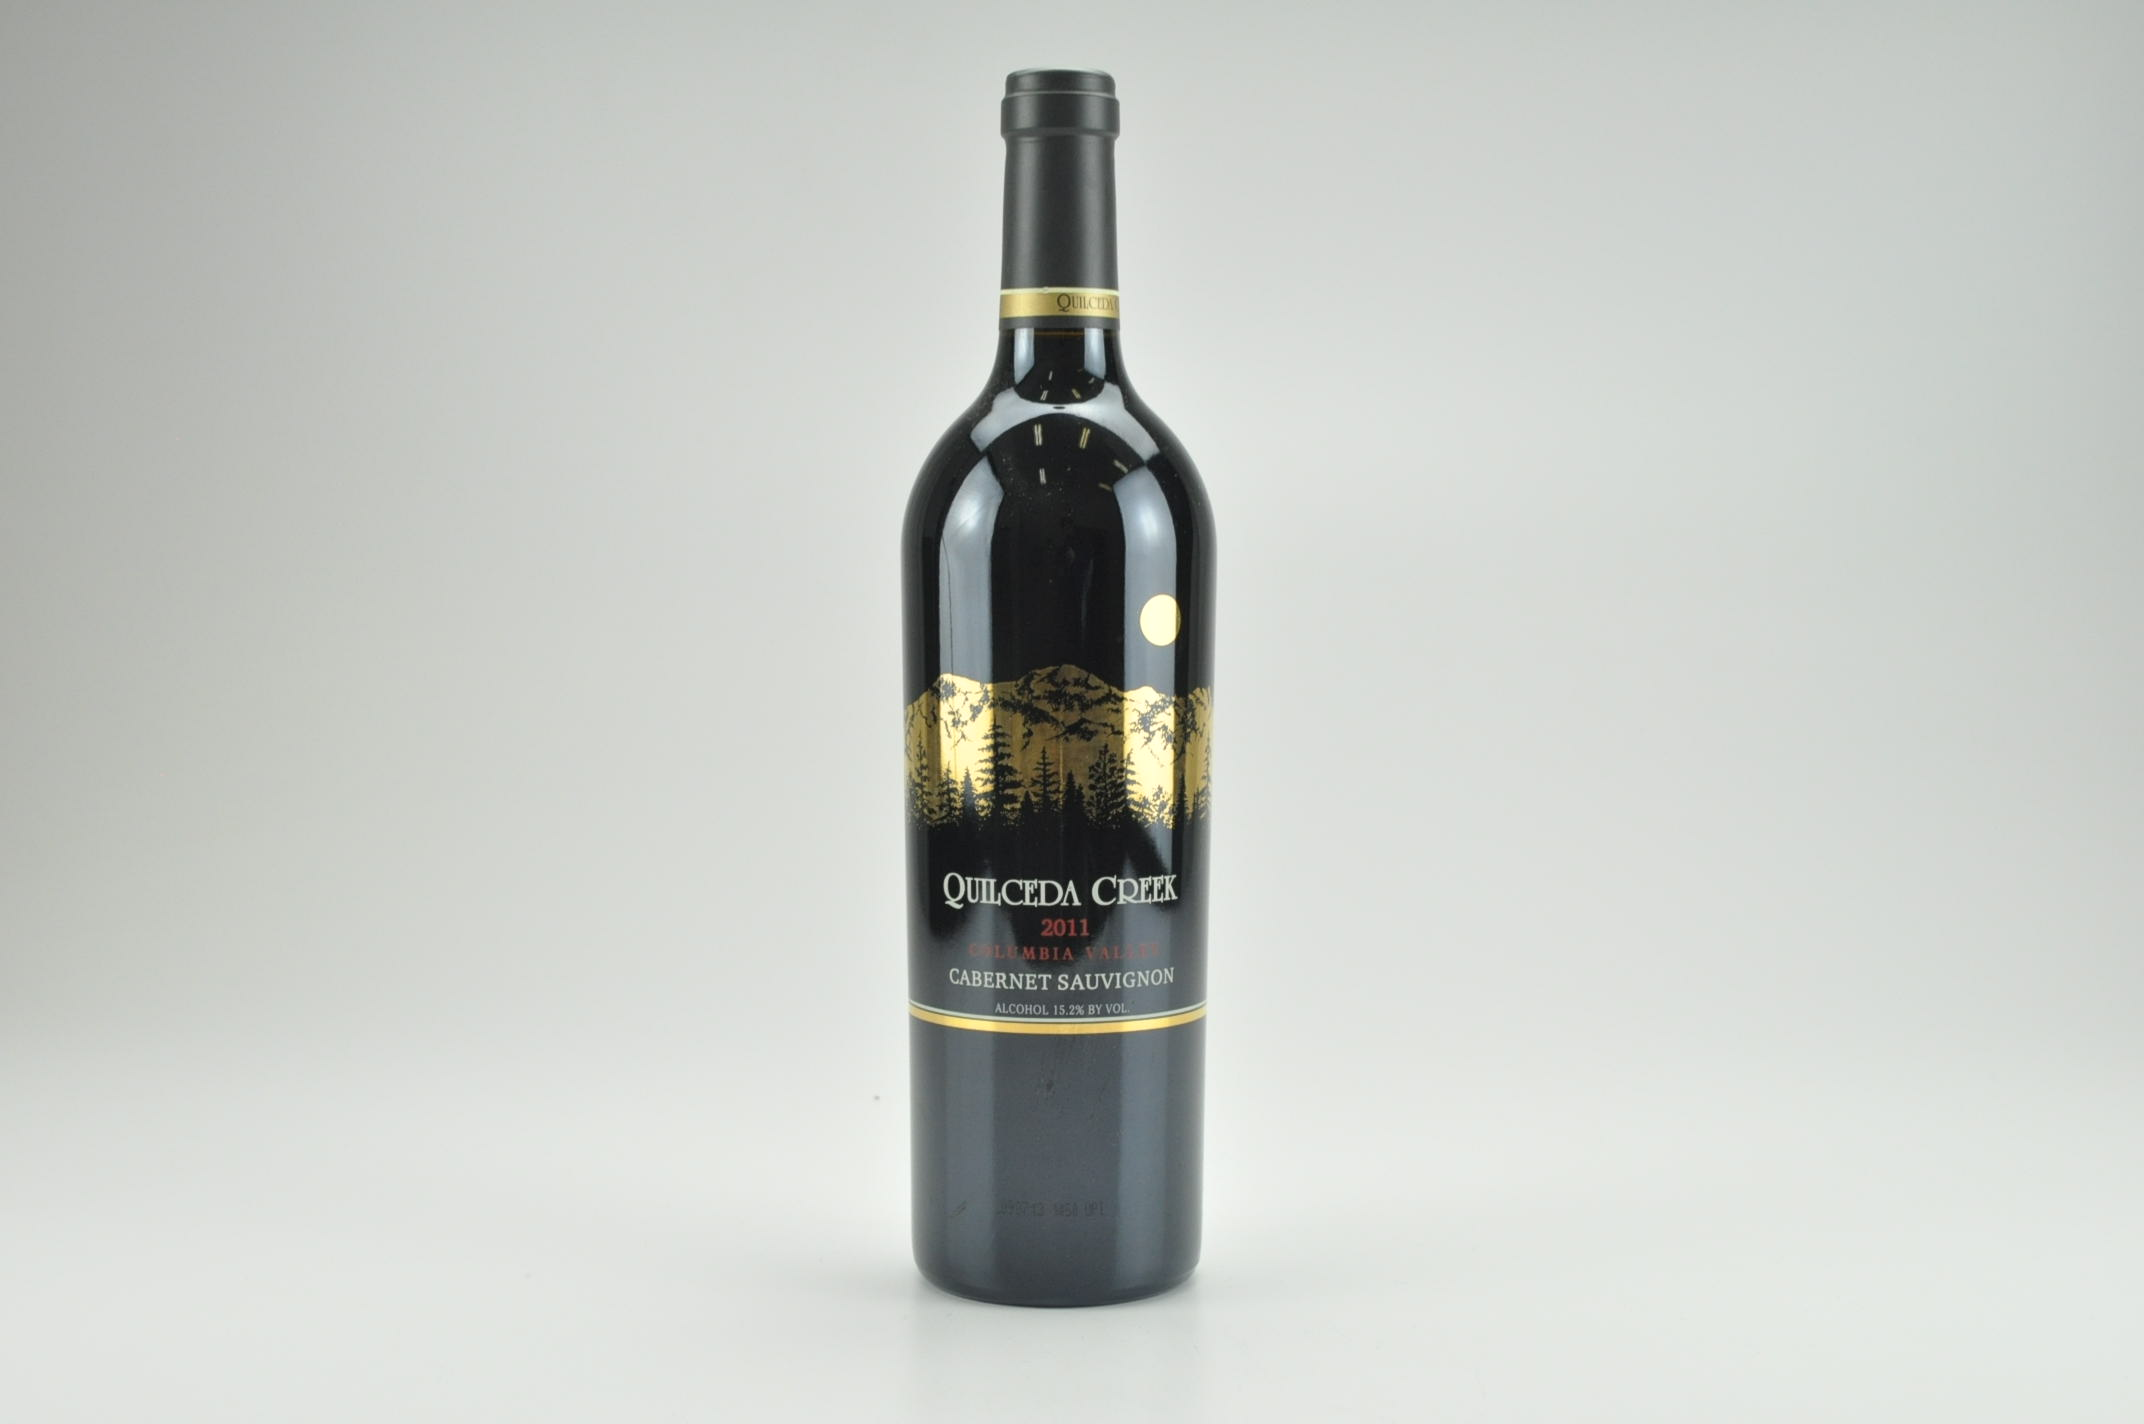 2014 Quilceda Creek Cabernet Sauvignon, Columbia Valley RP--100